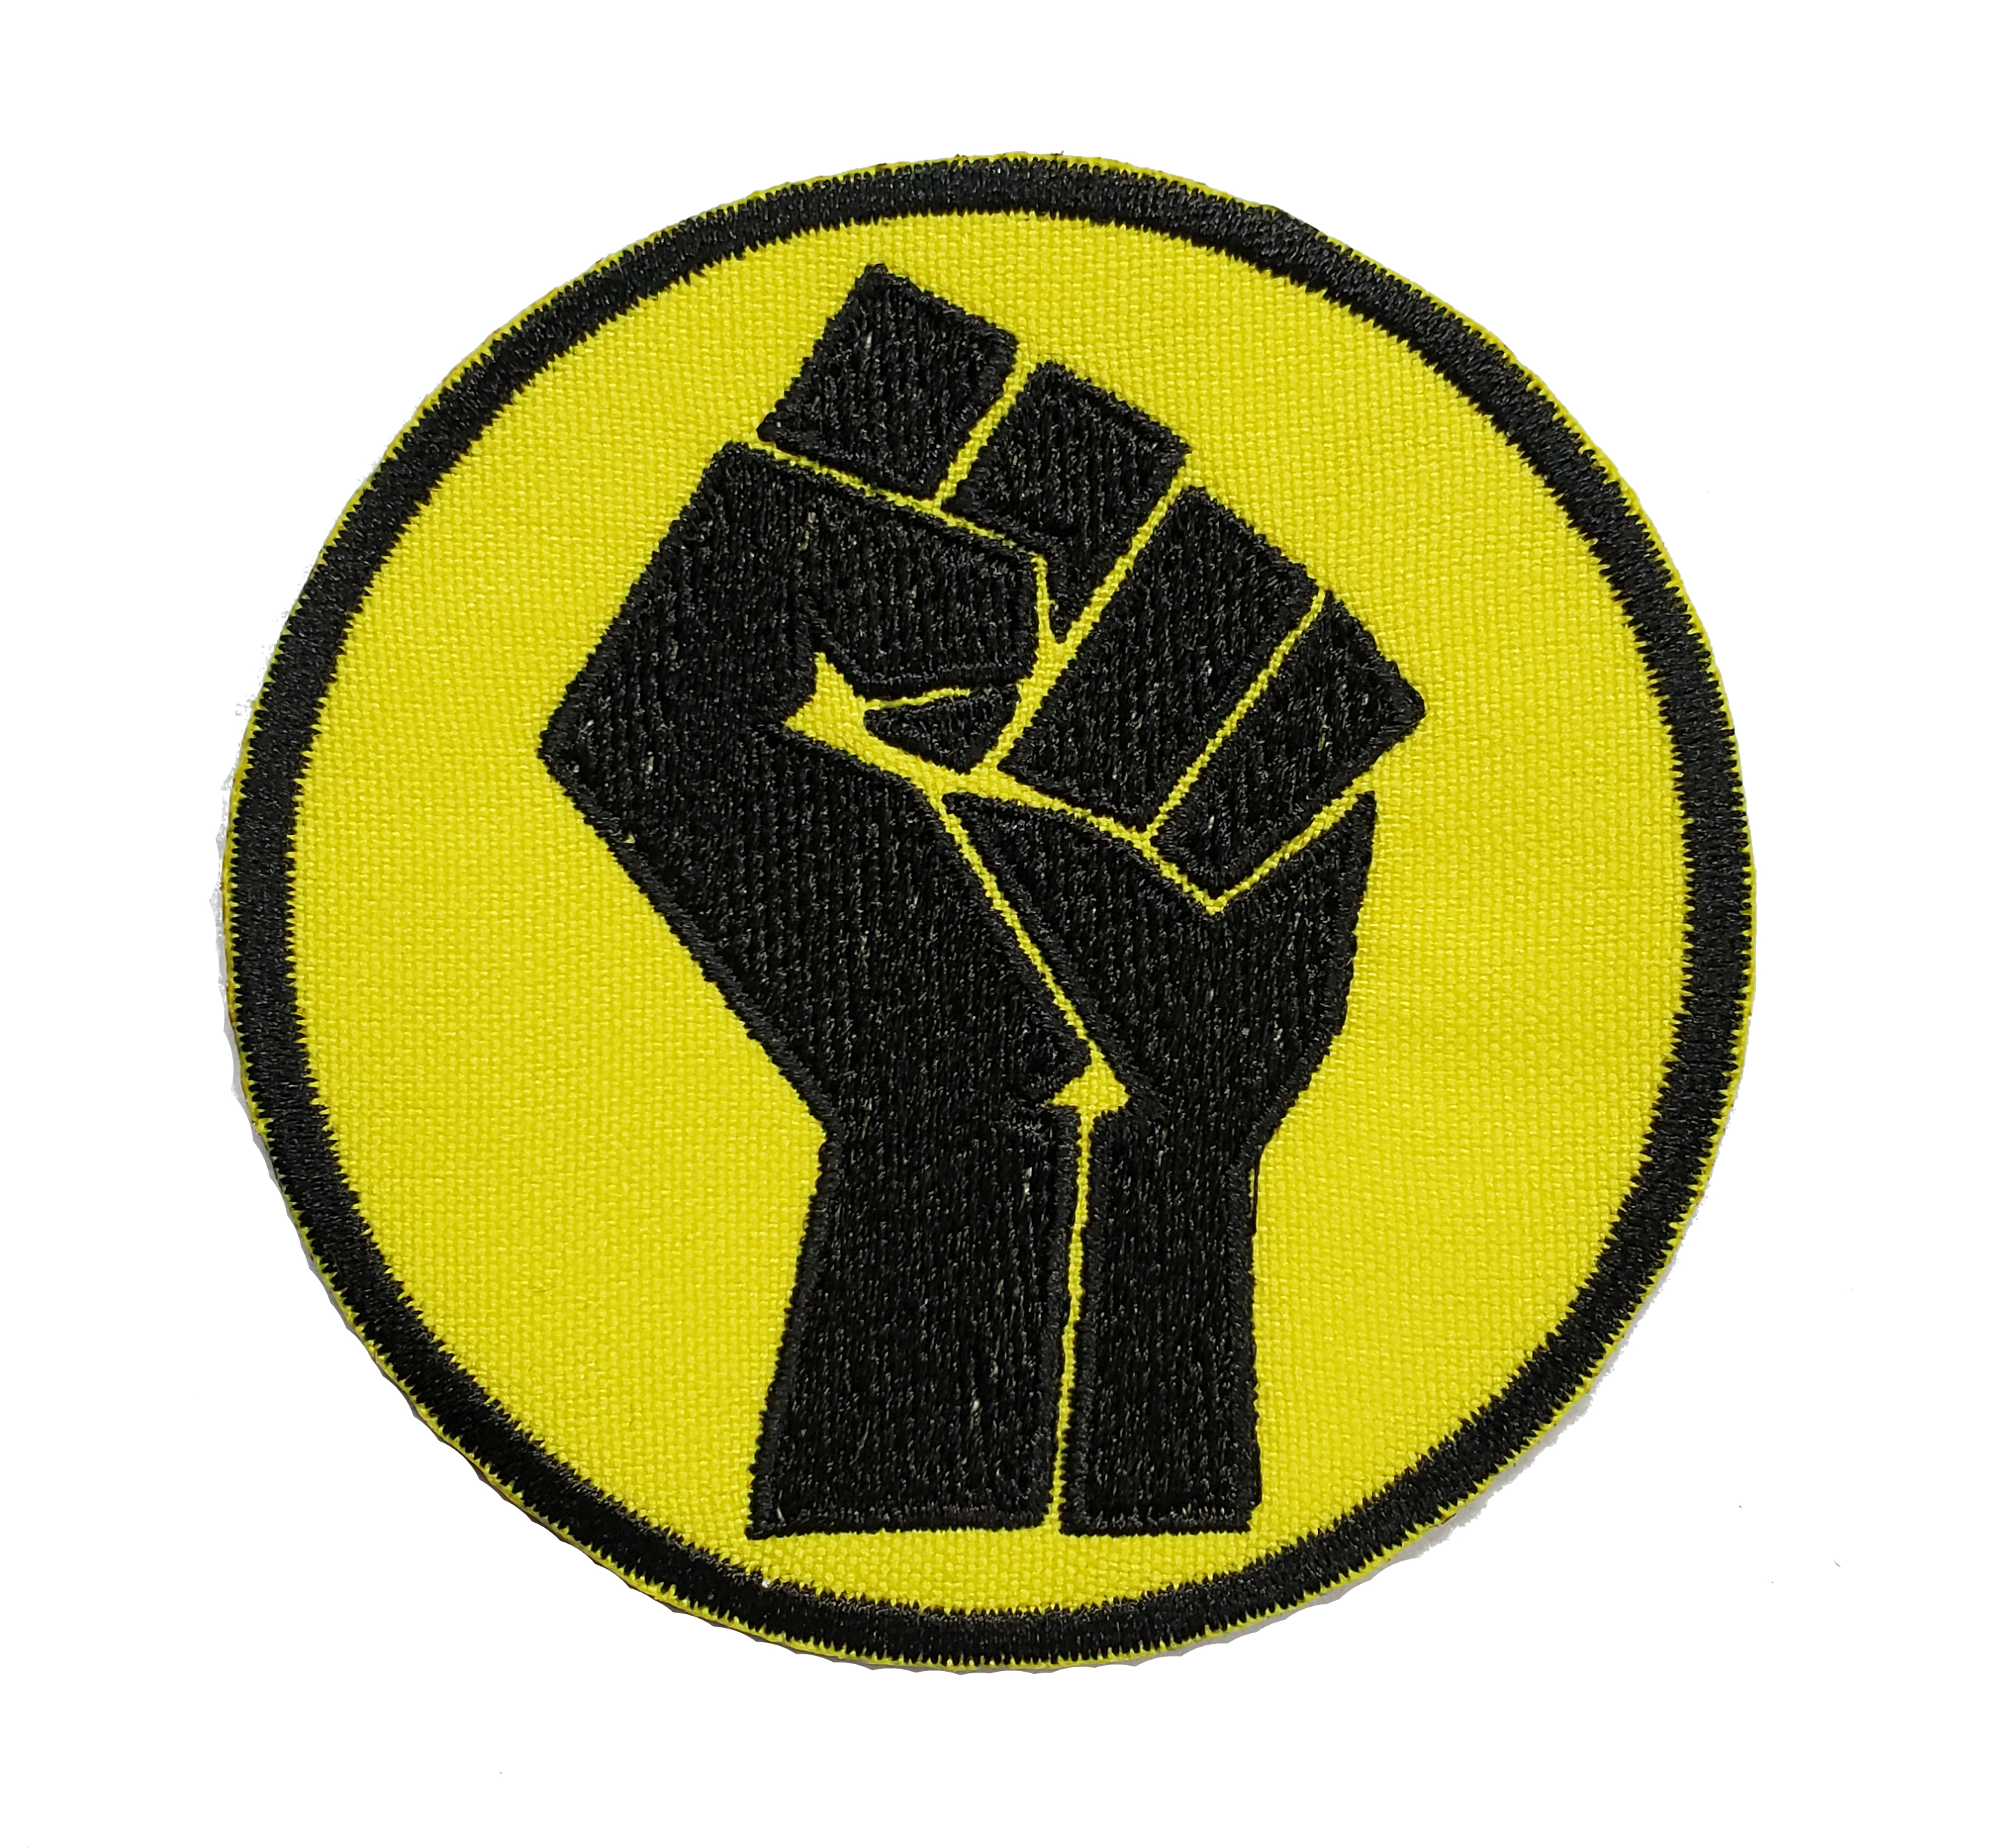 6 Pcs Black Lives Matter Iron On Patches-Fist Up Sew On Patch Applique Patch Decoration Patch for Jeans DIY Accessories Bags Clothing Repair Jacket Hats